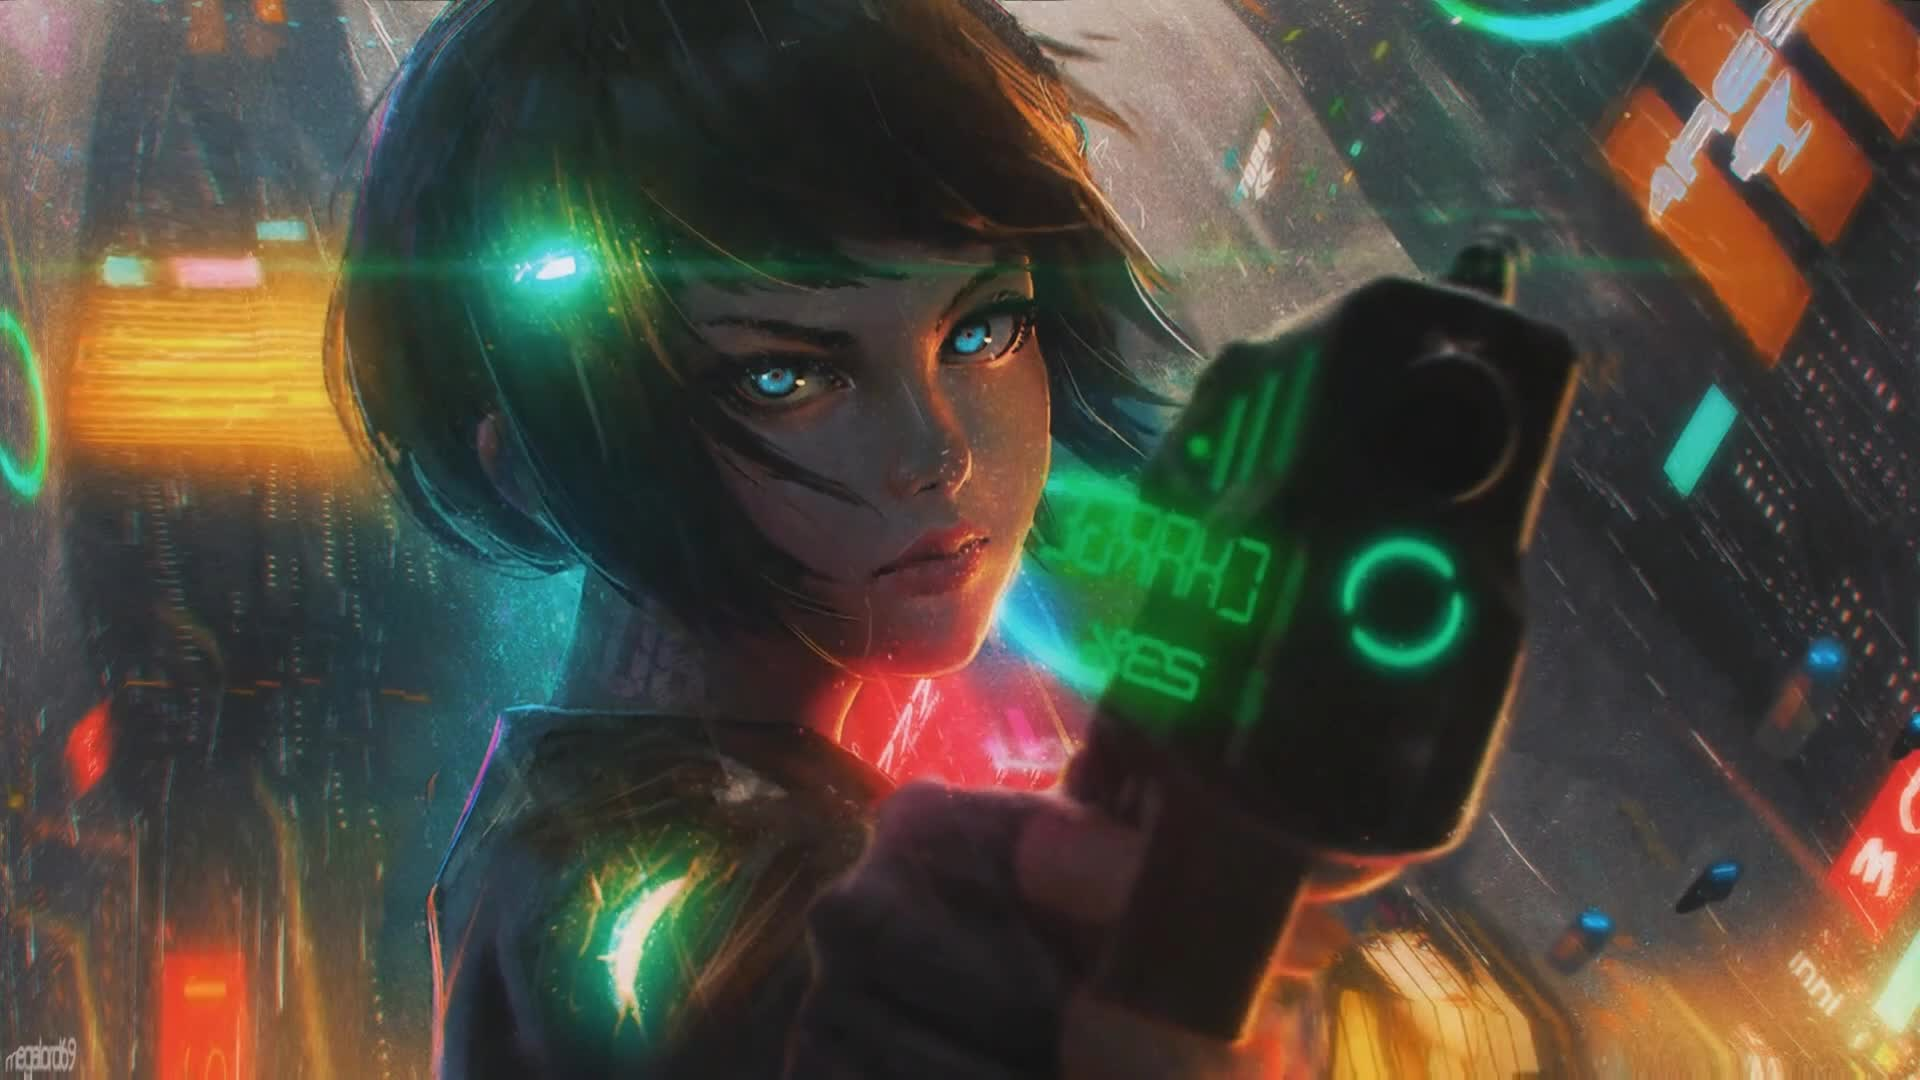 Cyberpunk 2077 Anime Story and Connection with Game